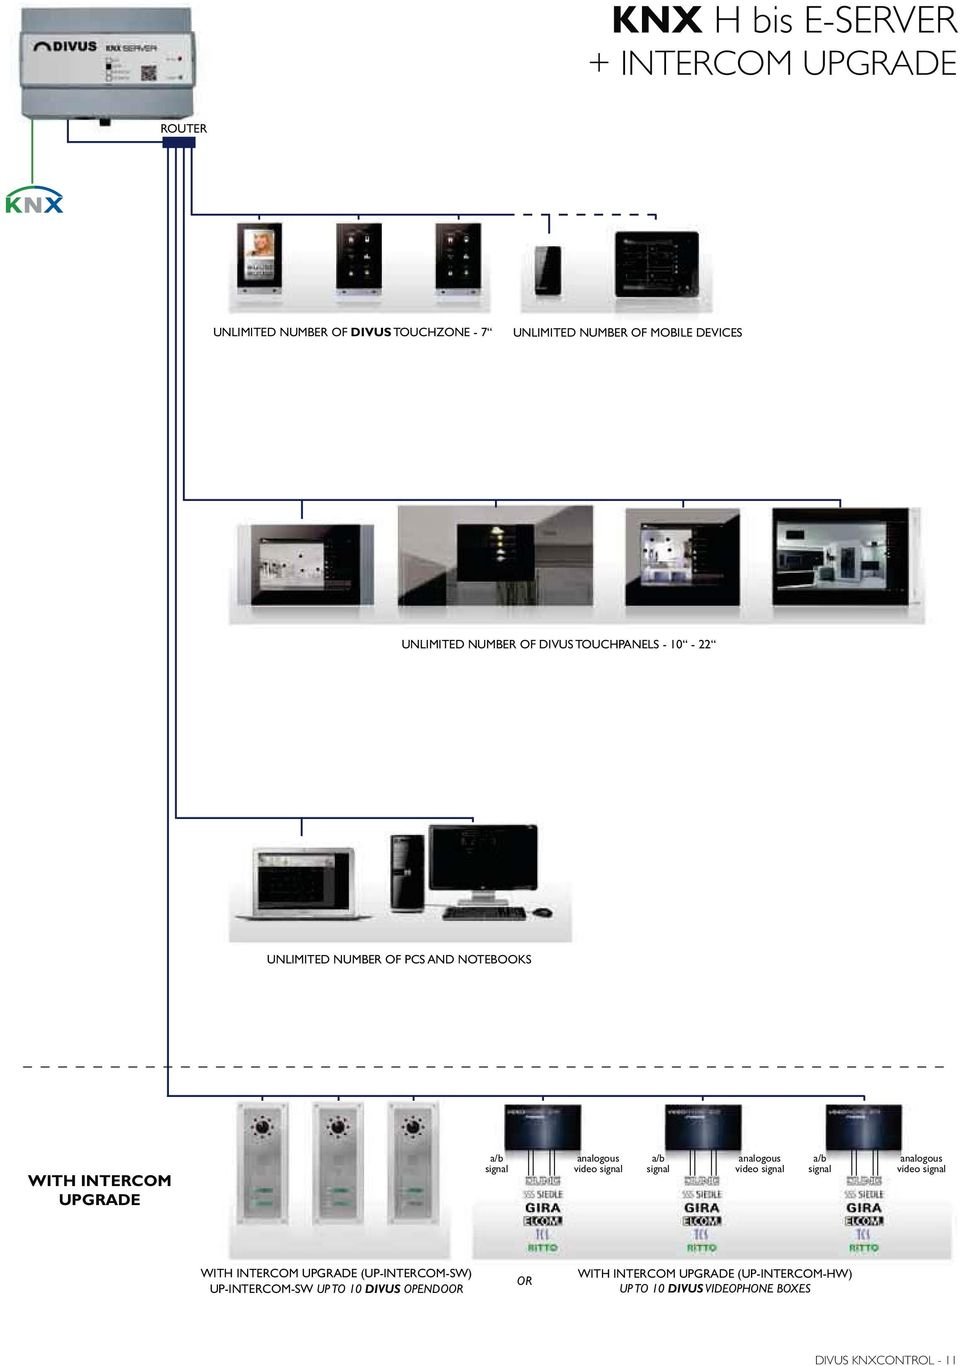 INTERCOM UPGRADE video video video WITH INTERCOM UPGRADE (UP-INTERCOM-SW) UP-INTERCOM-SW UP TO 10 DIVUS